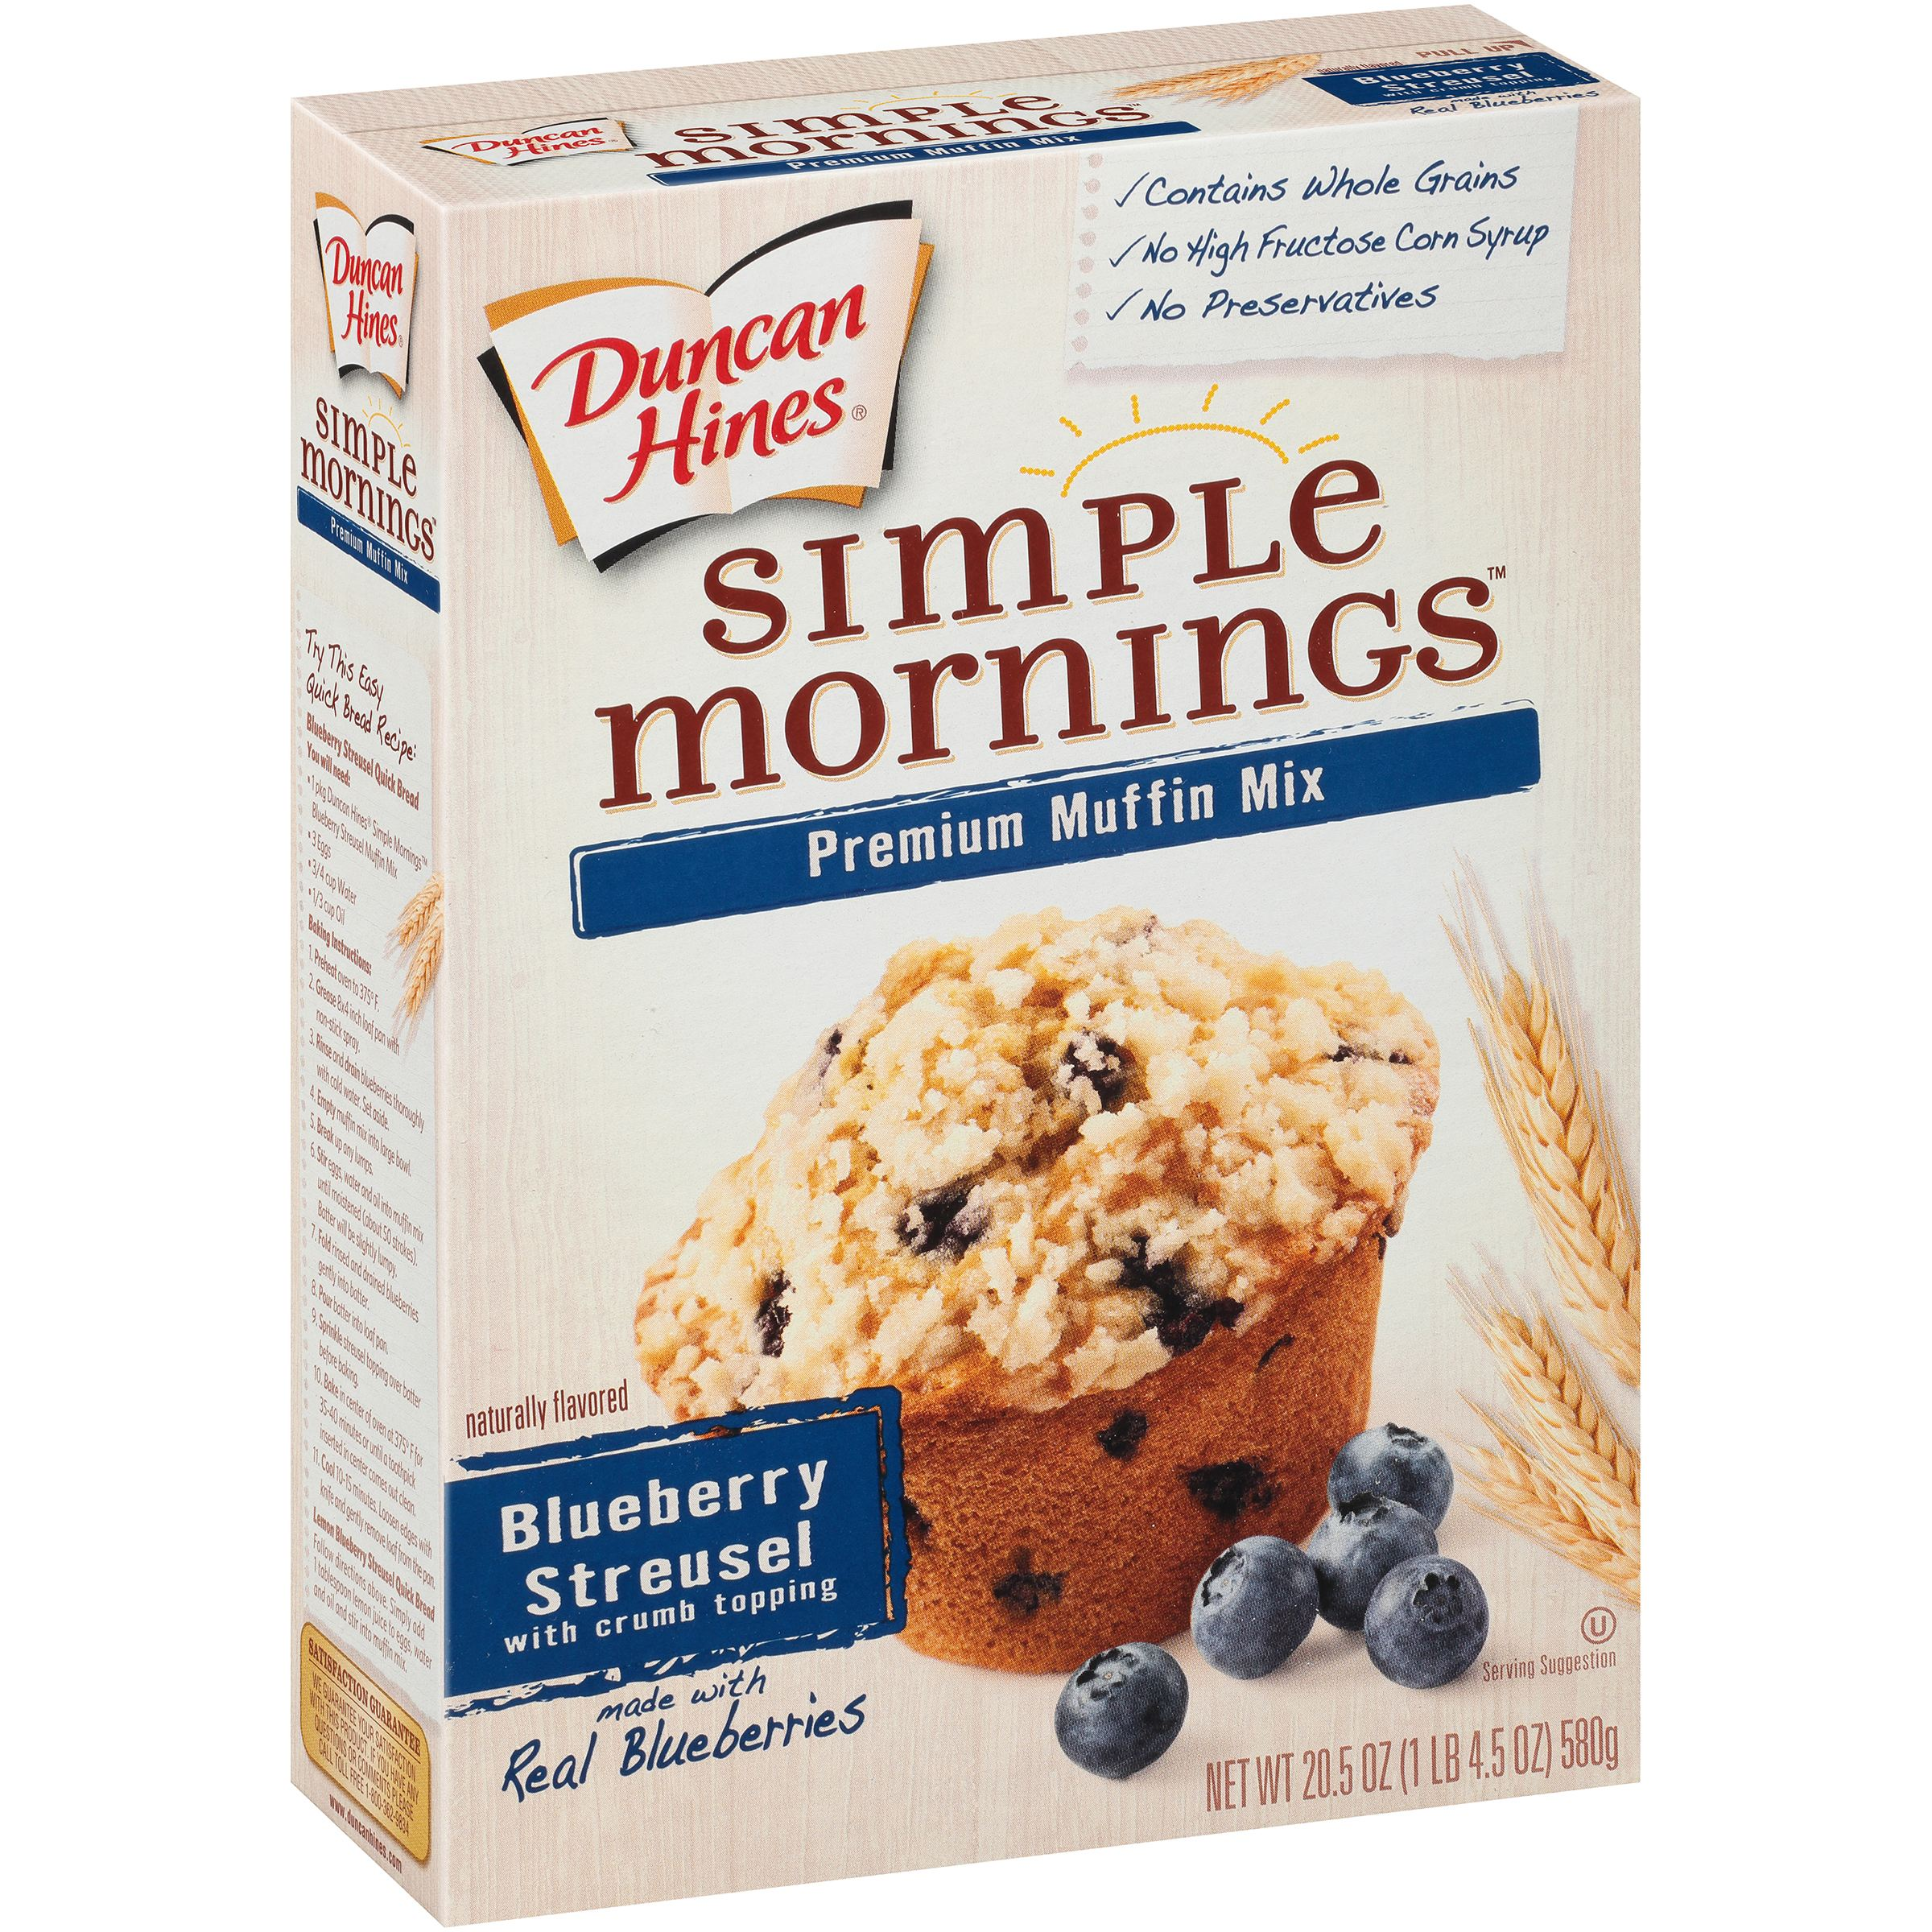 Duncan Hines Simple Mornings Premium Muffin Mix Blueberry Streusel, 20.5 OZ by Pinnacle Foods Group LLC